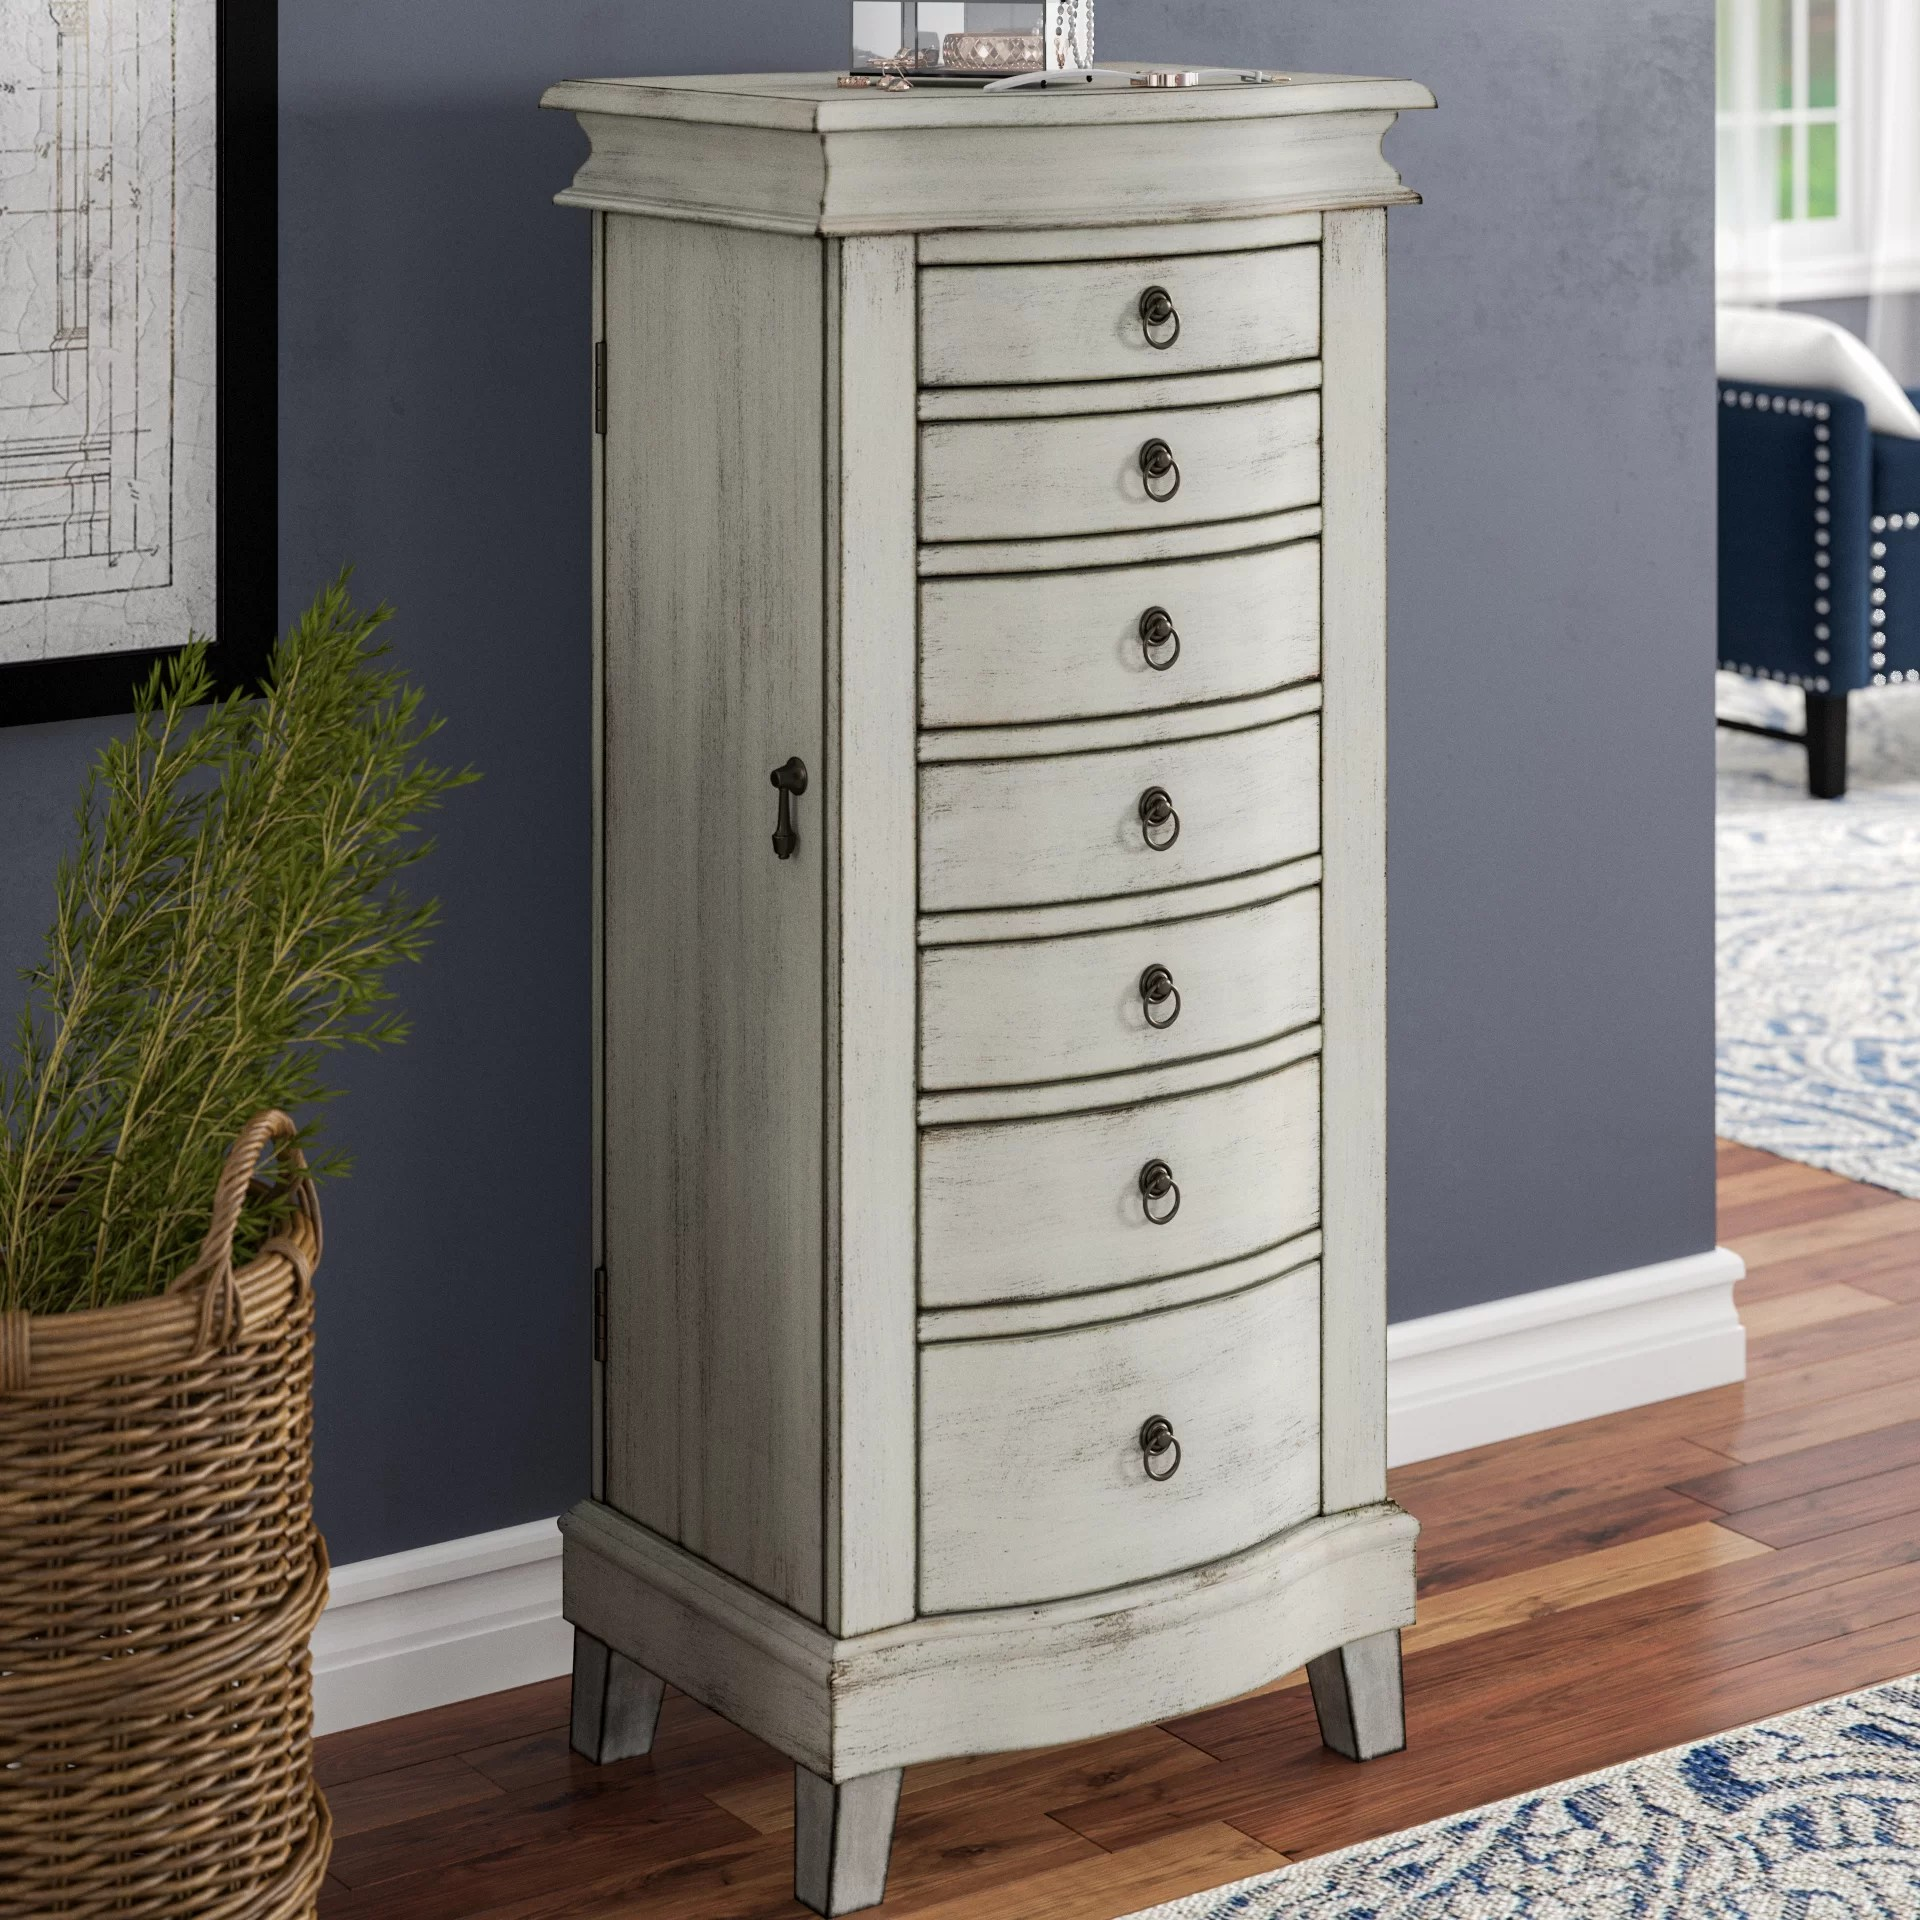 darby home co brookside free standing jewelry armoire reviews wayfair